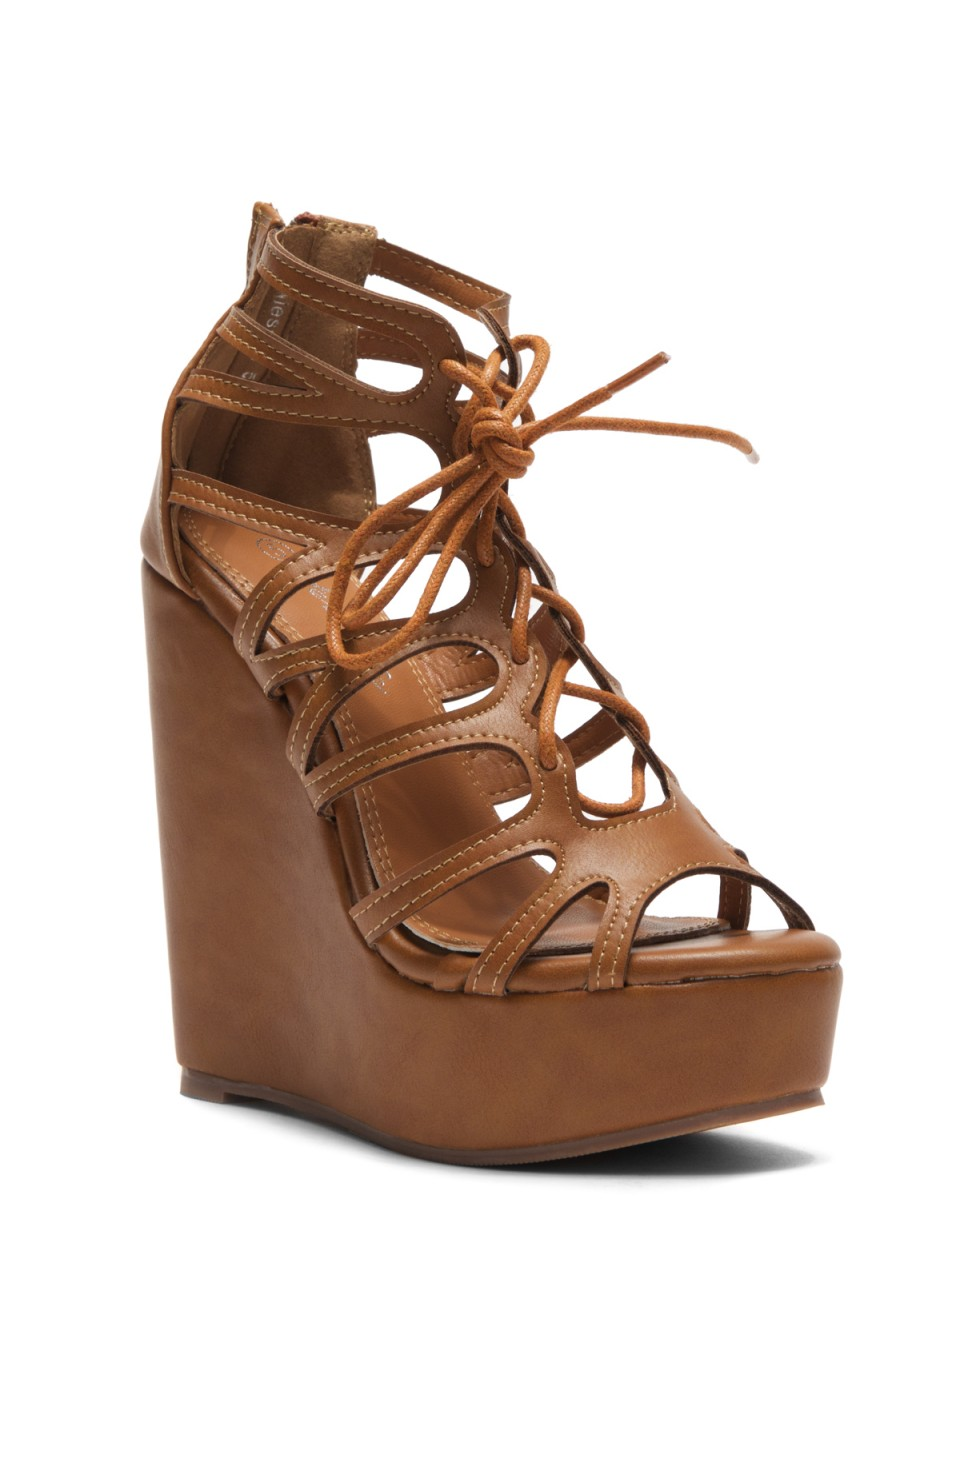 Women's Cognac Alessaa 5-inch Wedge Sandal with Faux Leather Styling